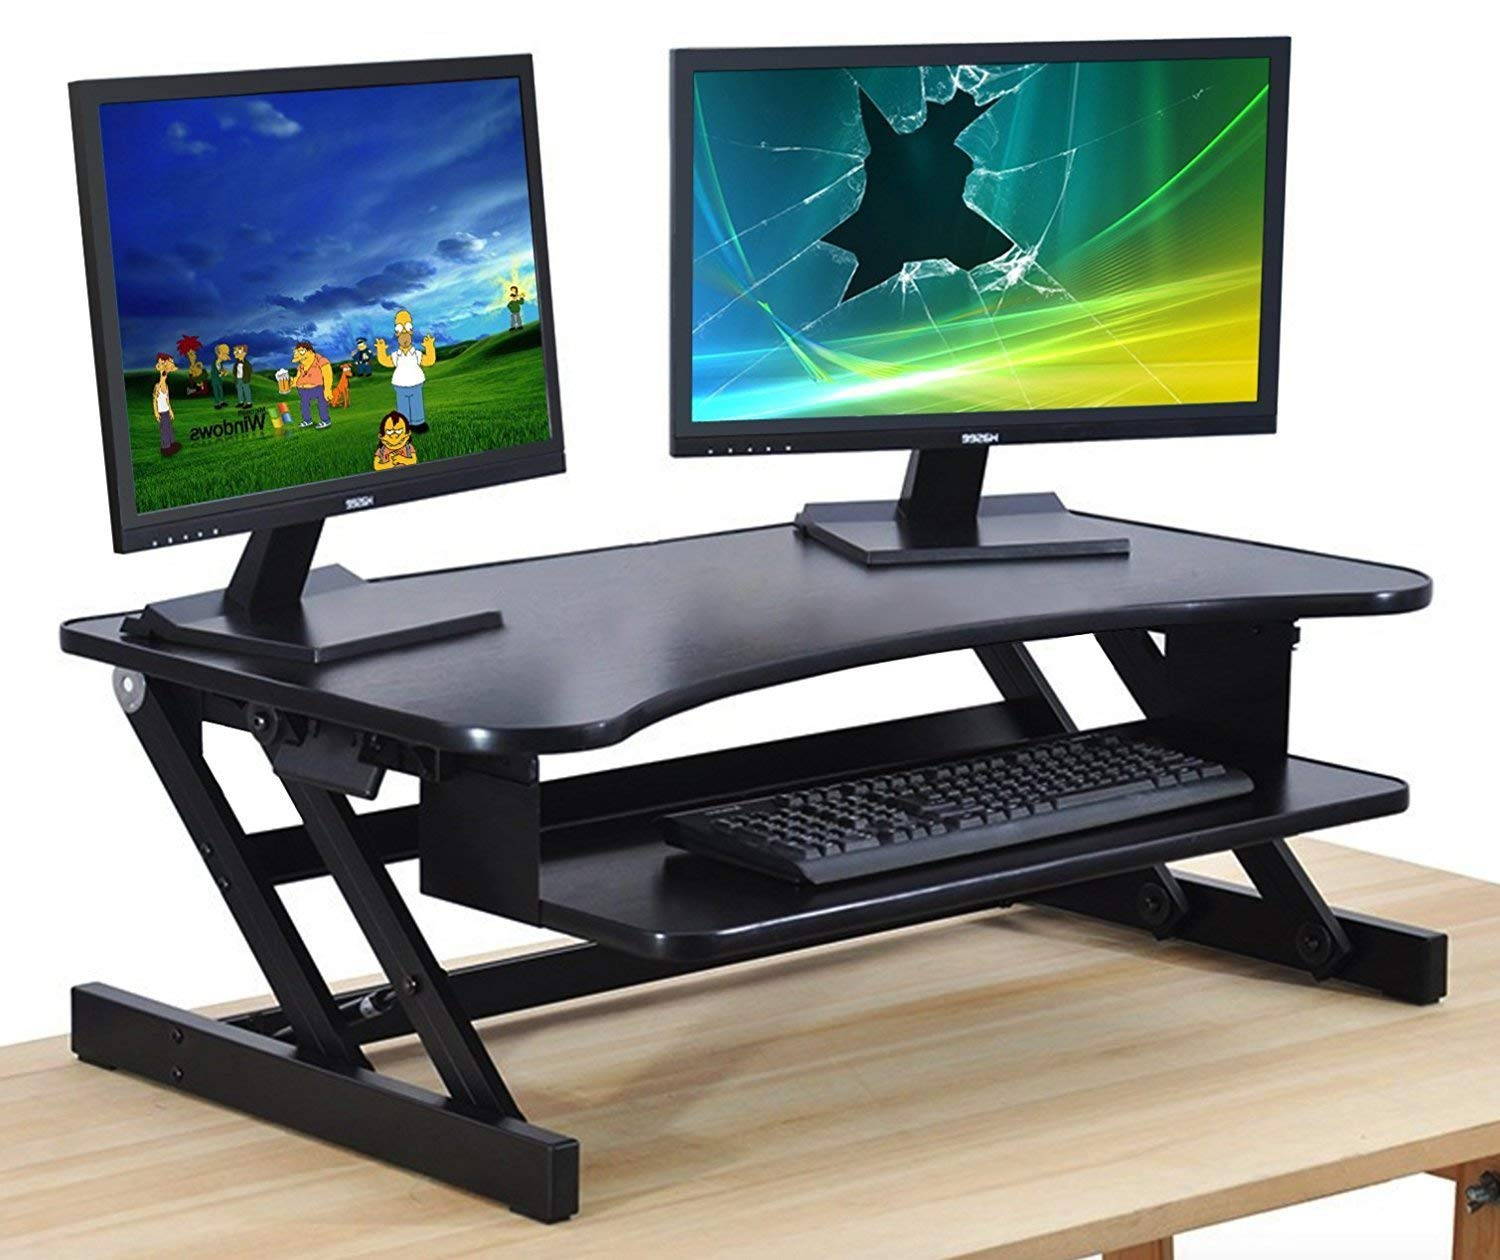 Benefits Offered by Using a Standing Desk